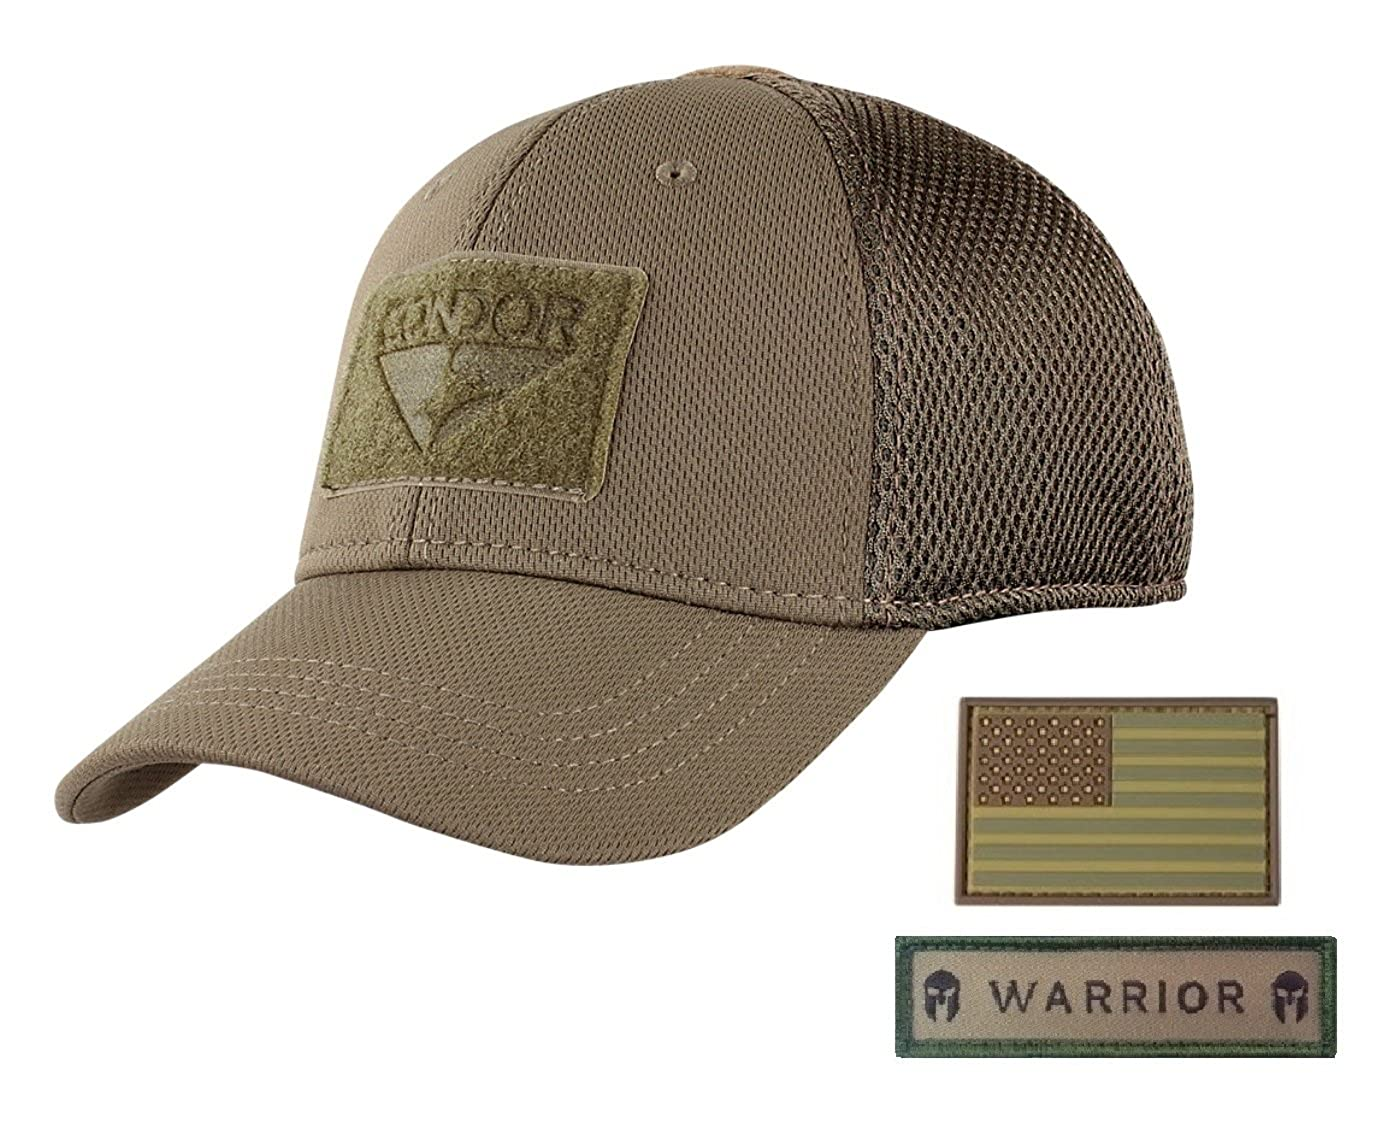 Active Duty Gear Condor Flex Mesh Cap (Brown) + PVC Flag   Warrior Patch 0c6cc9d0466